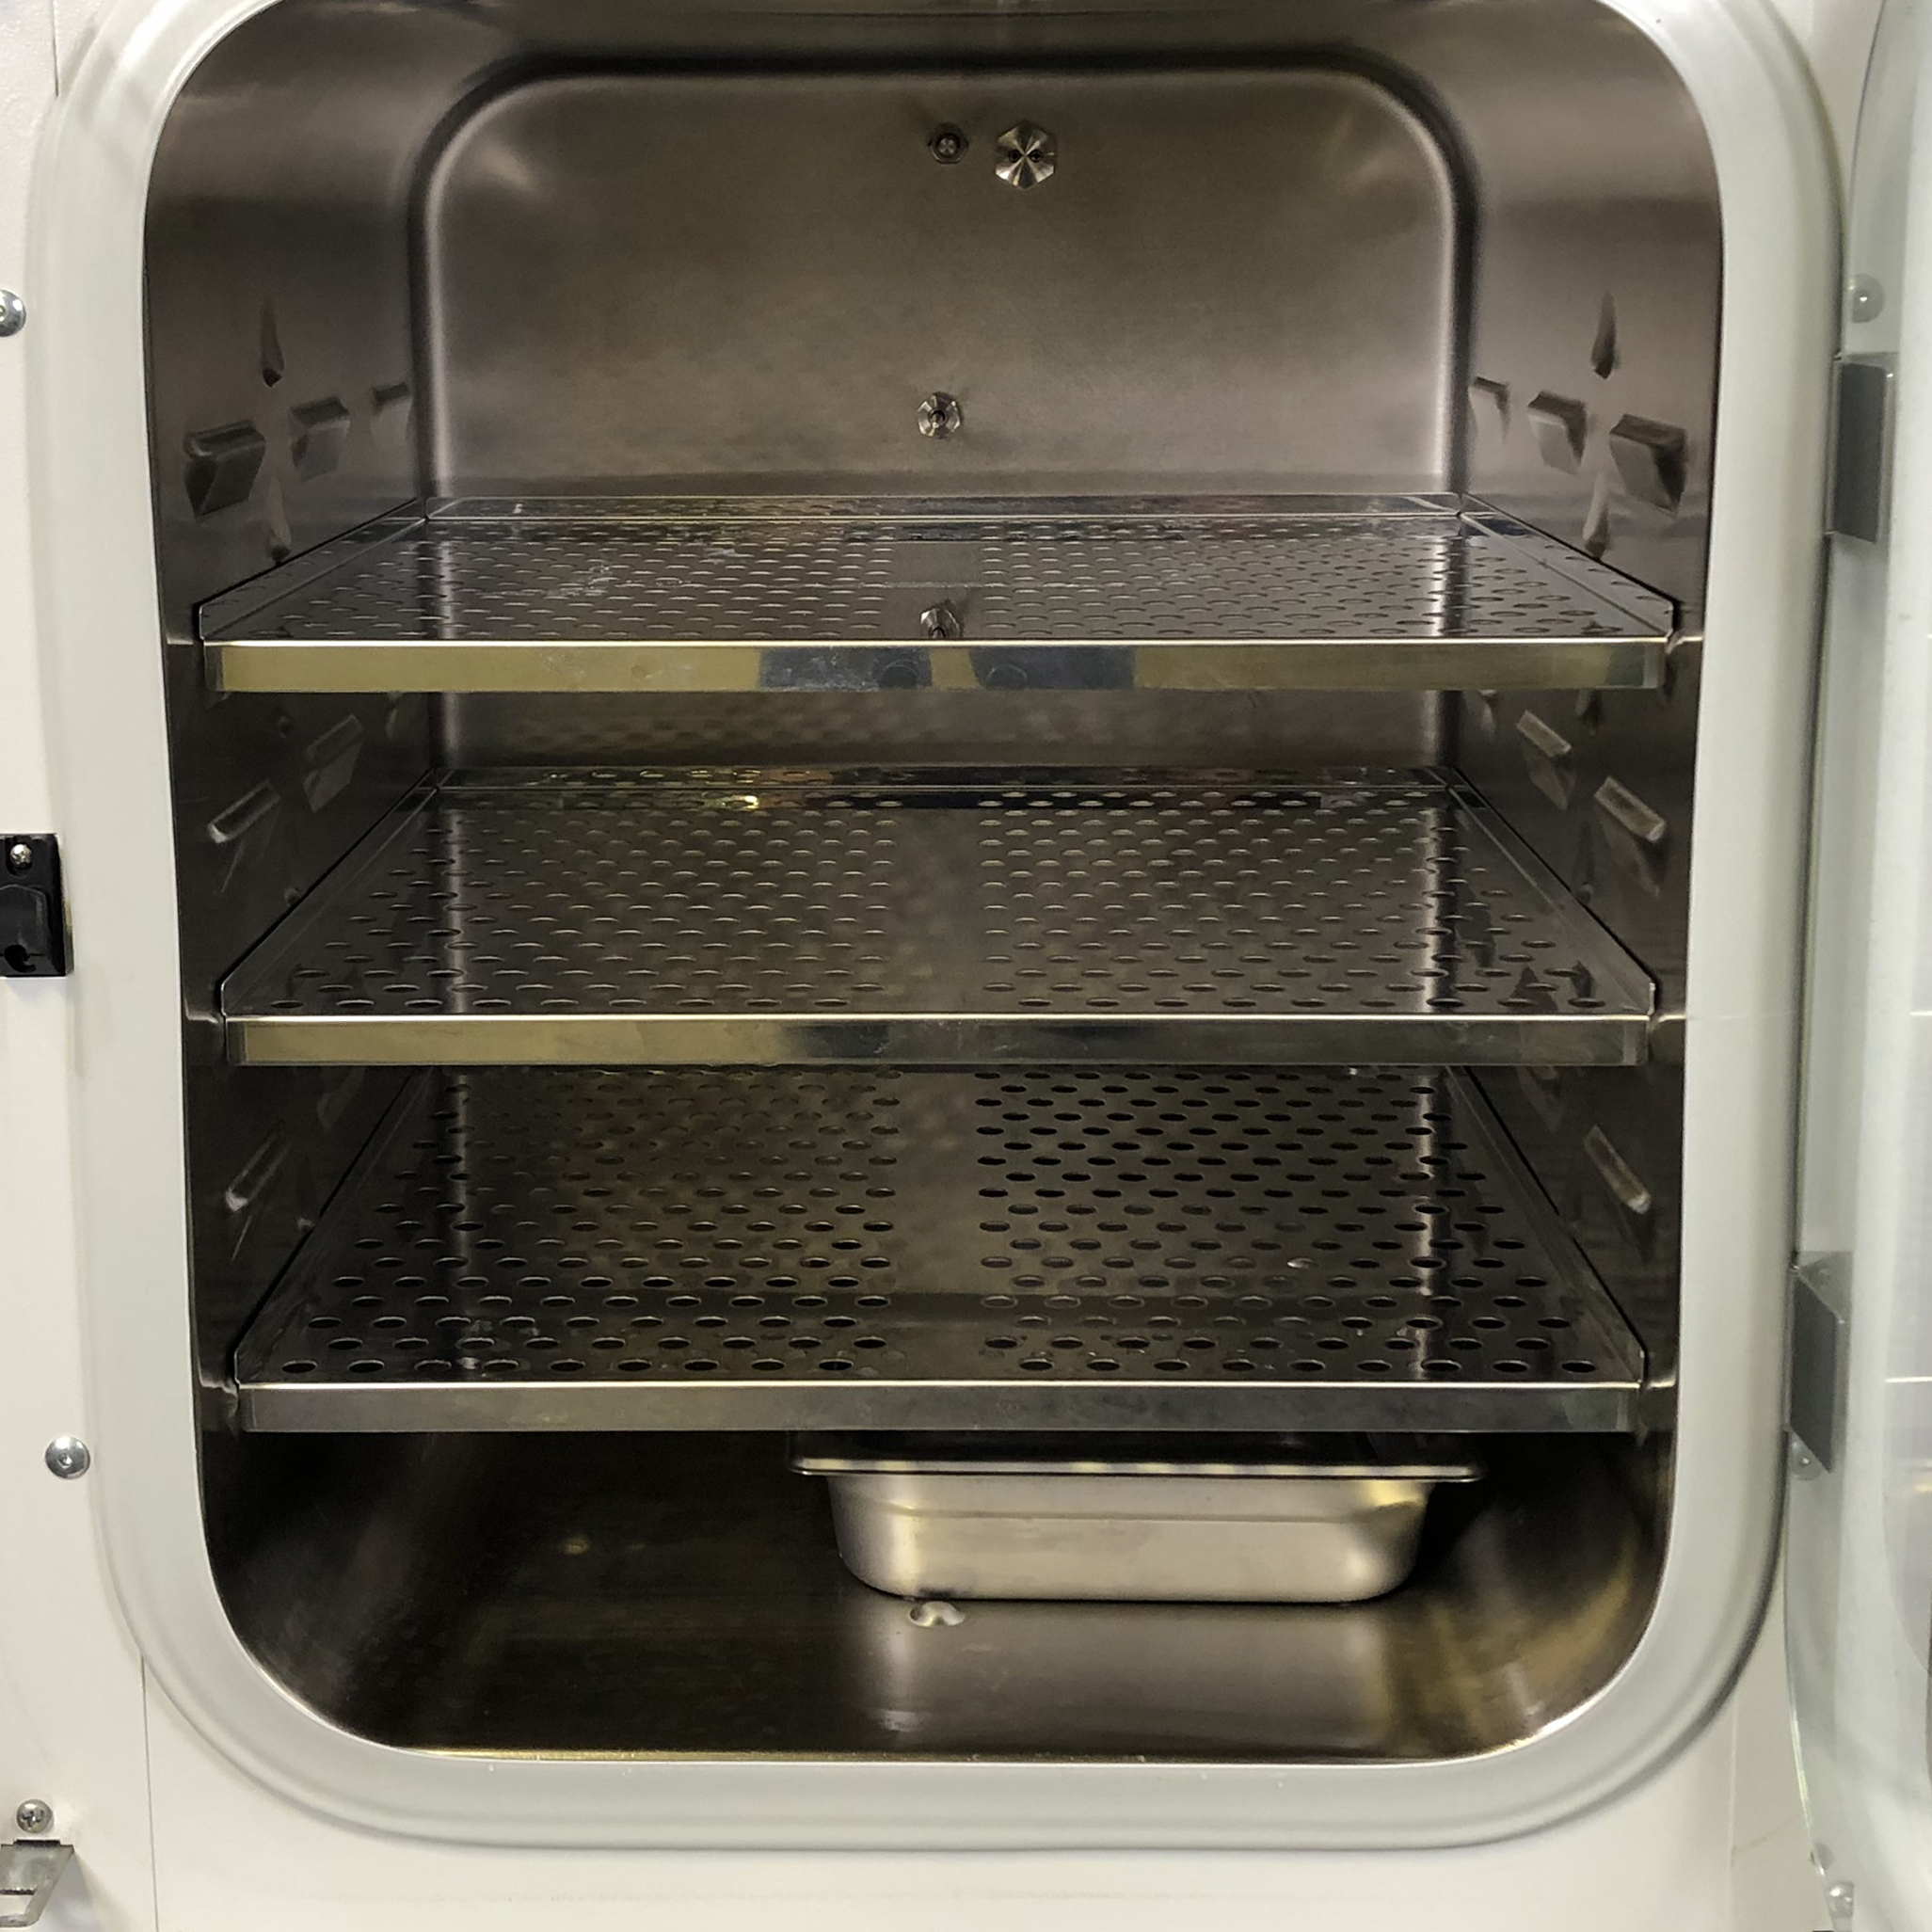 Binder C150 UL CO2 Incubator Image